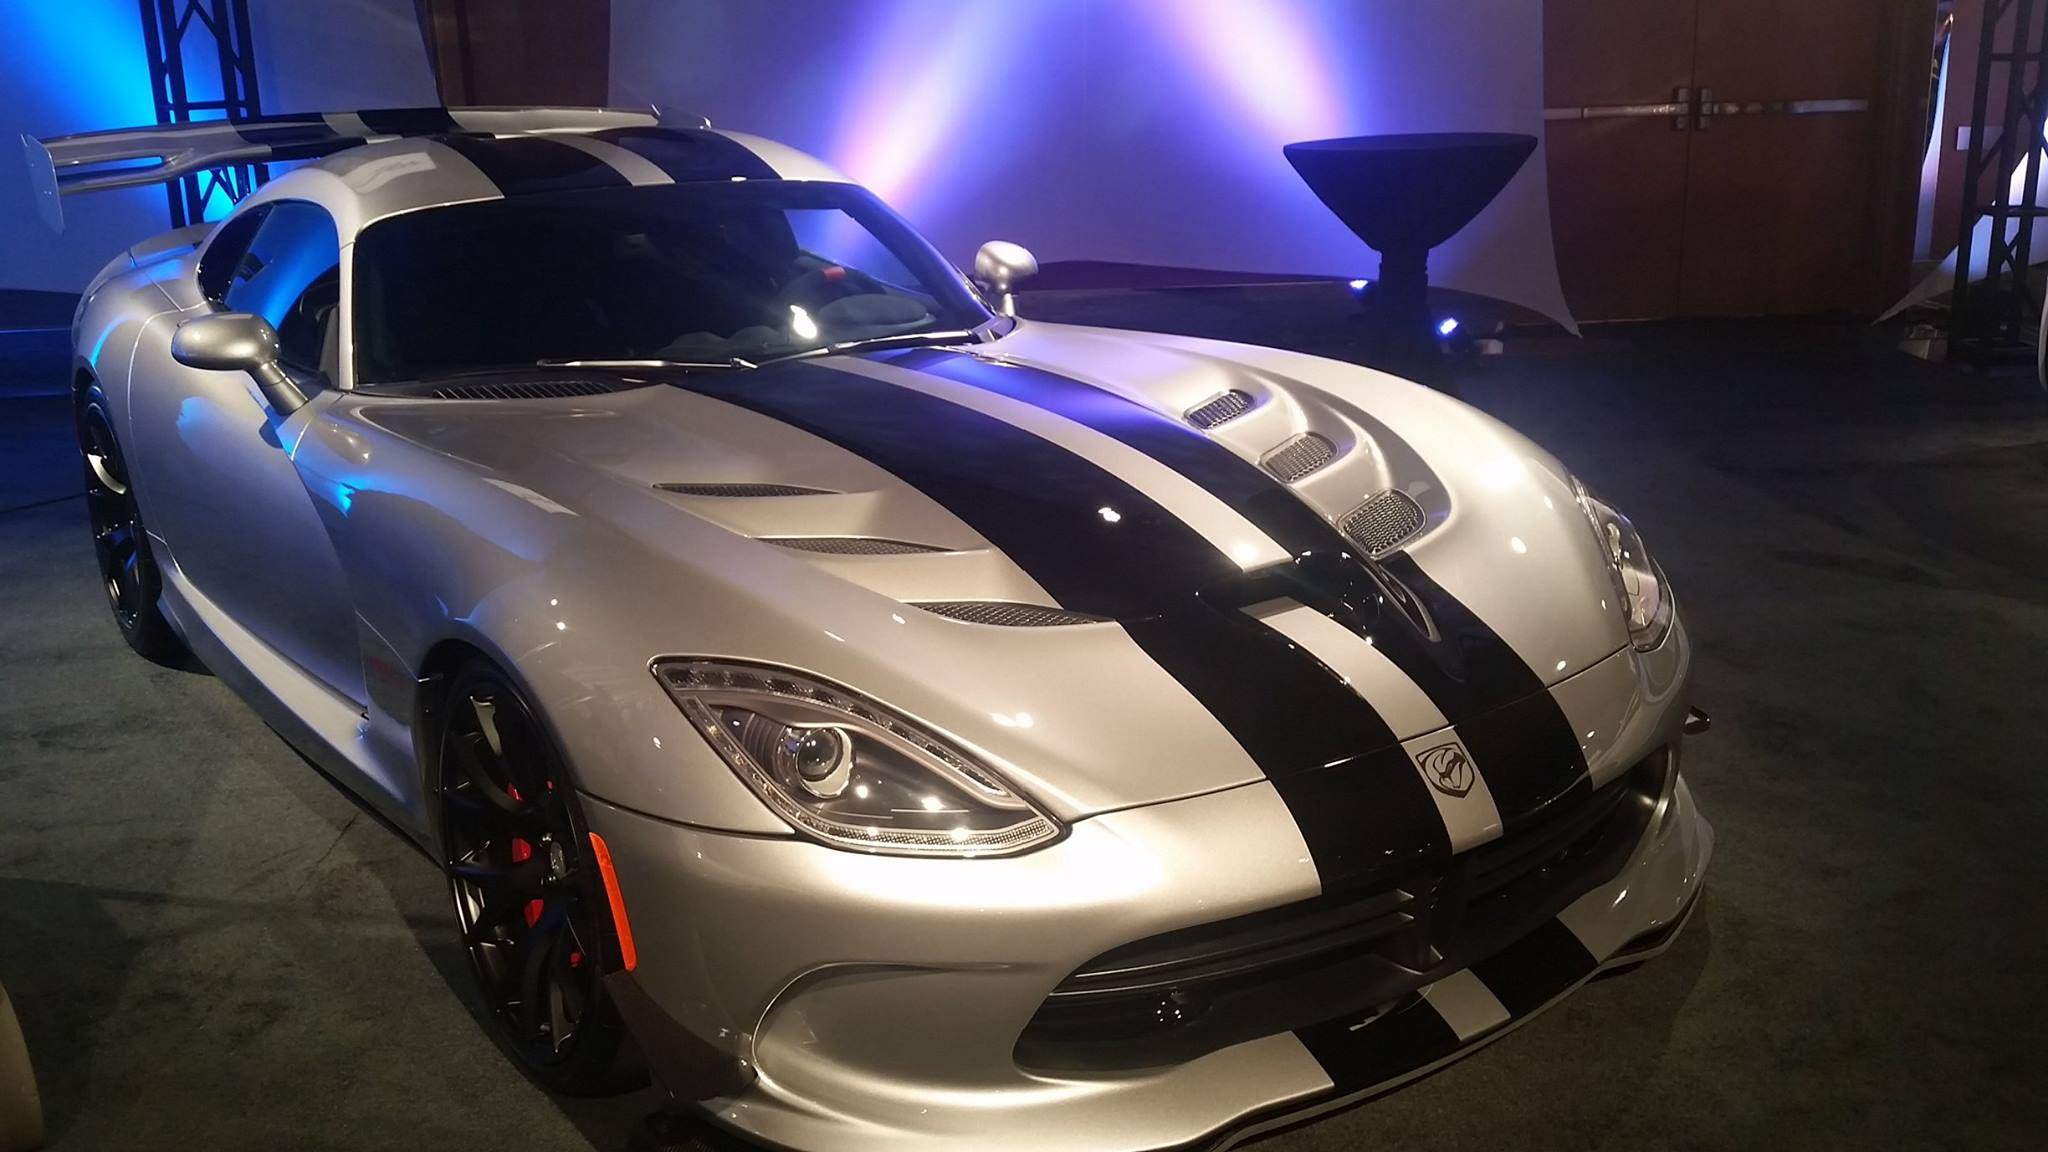 Dodge Viper - The Gallery - event - NAIAS 2016